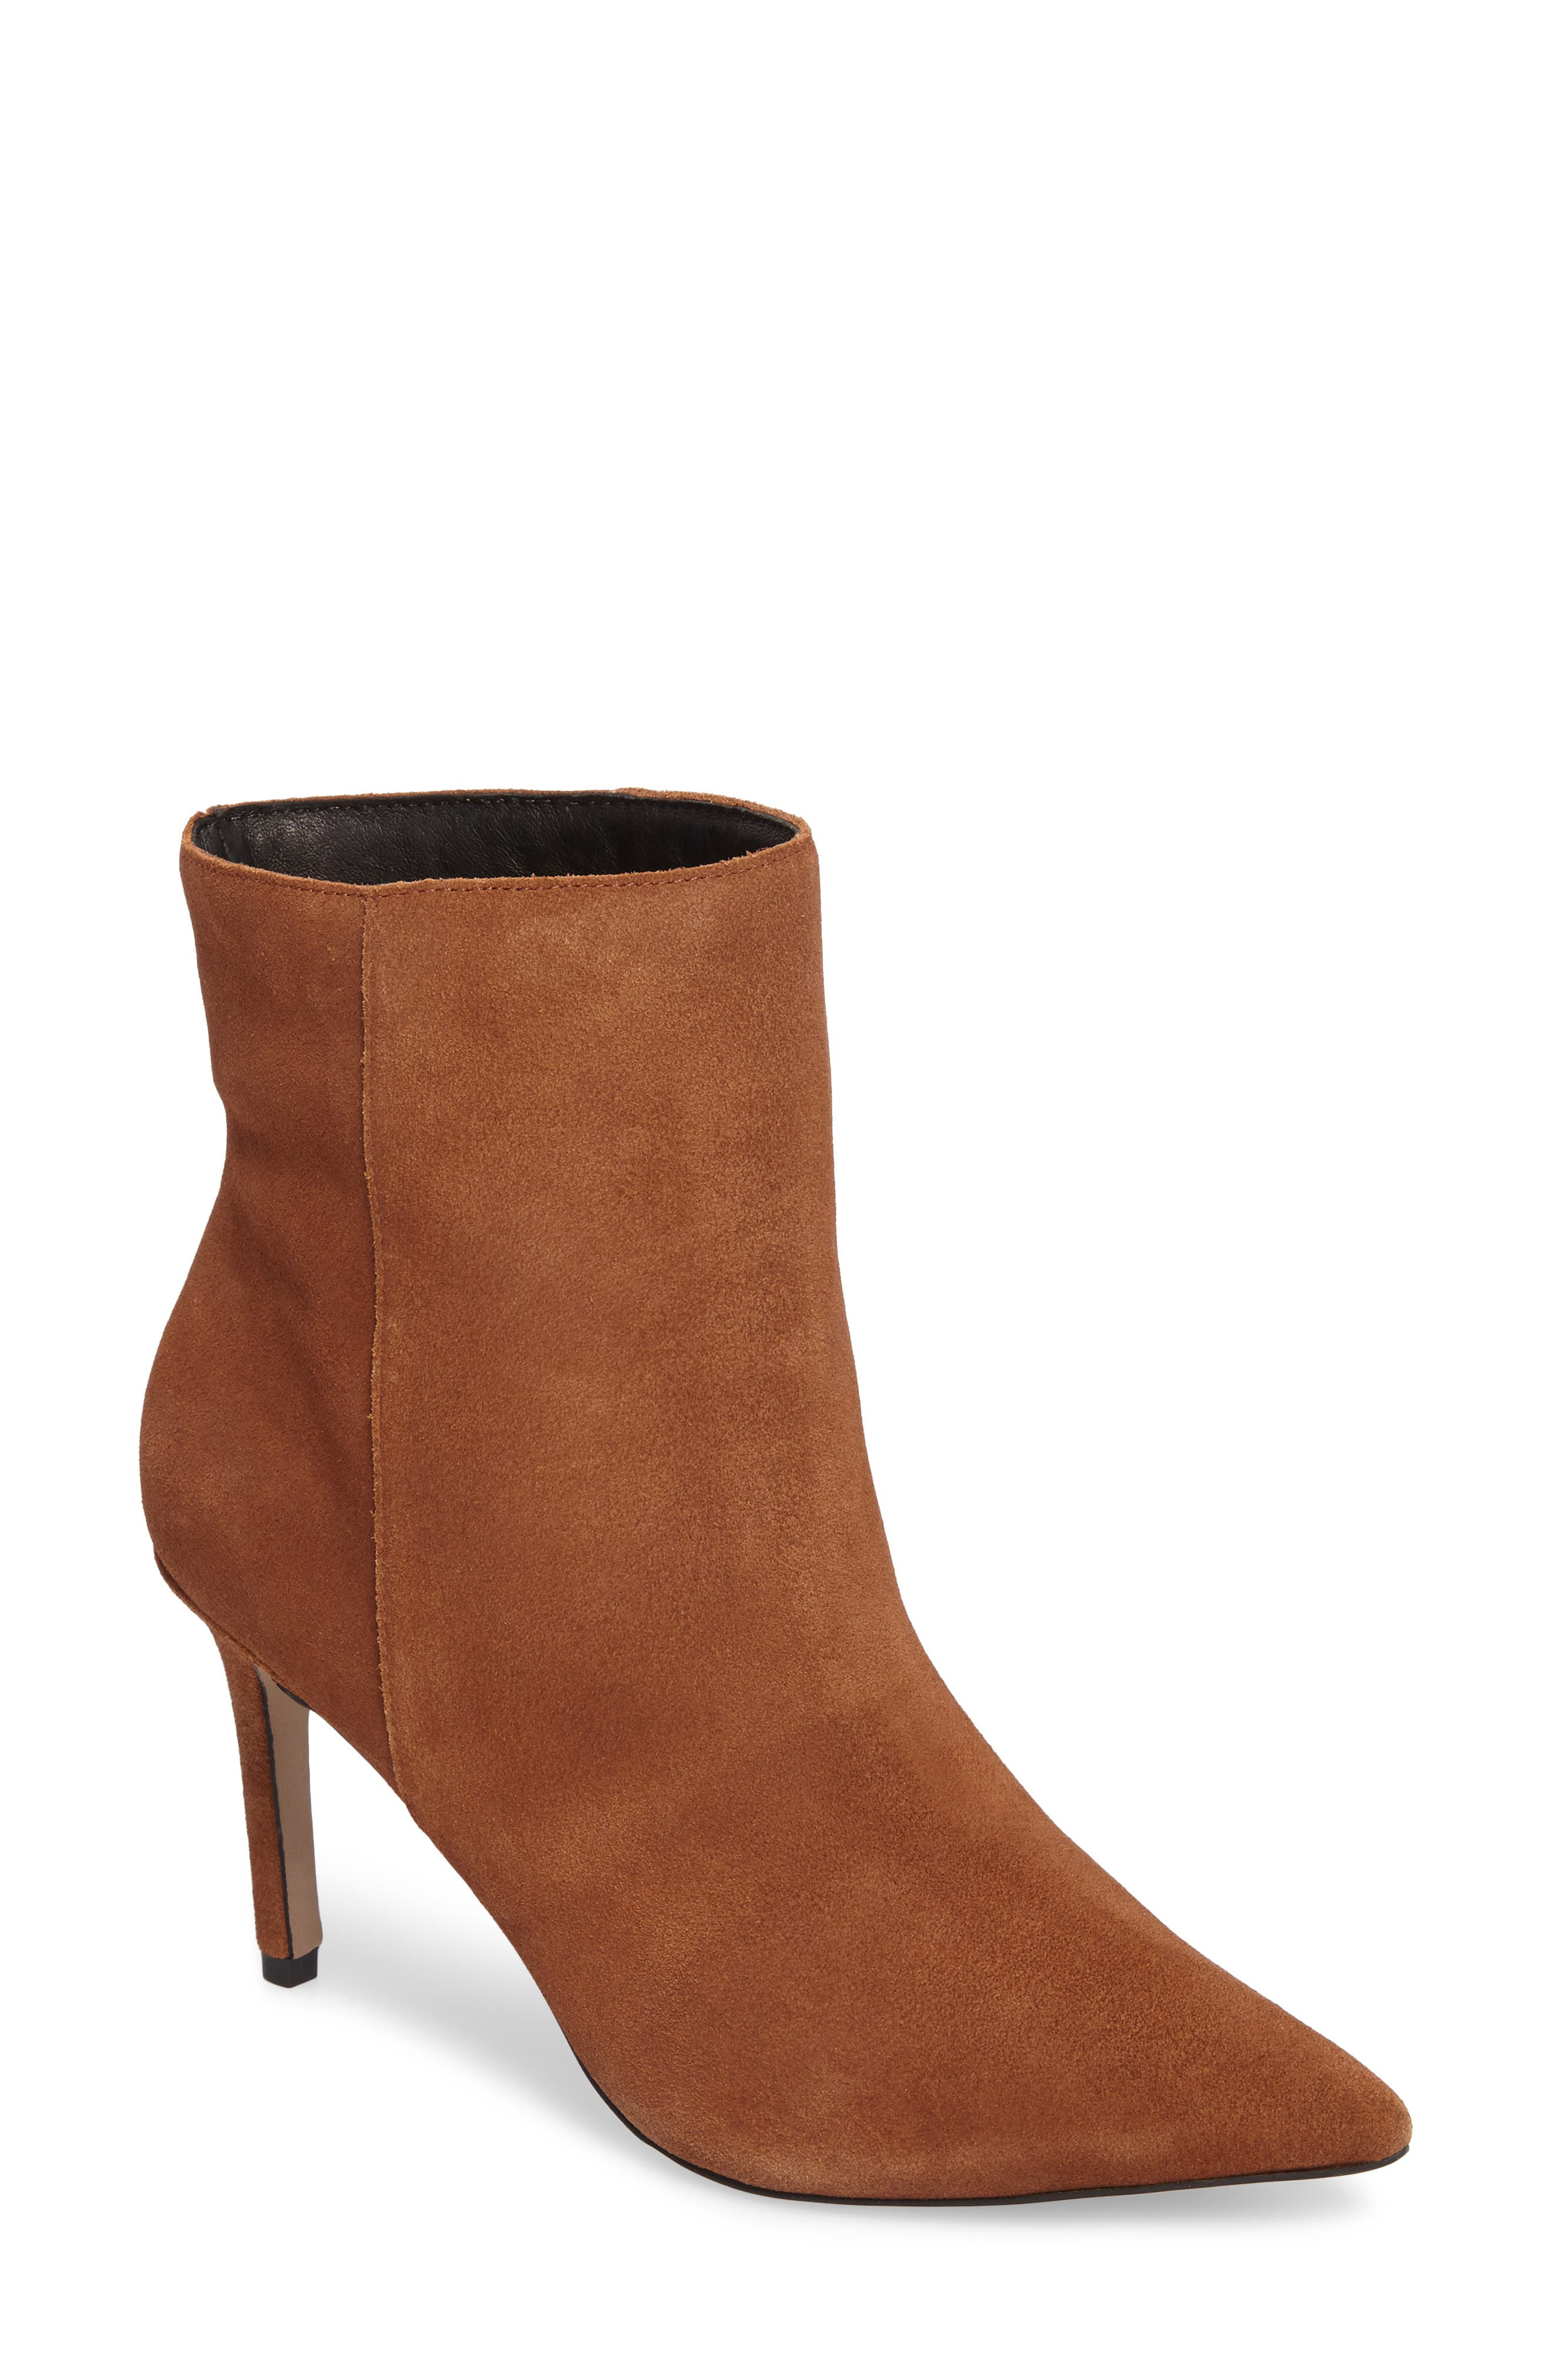 Holiday Stiletto Bootie,                             Main thumbnail 1, color,                             Tan